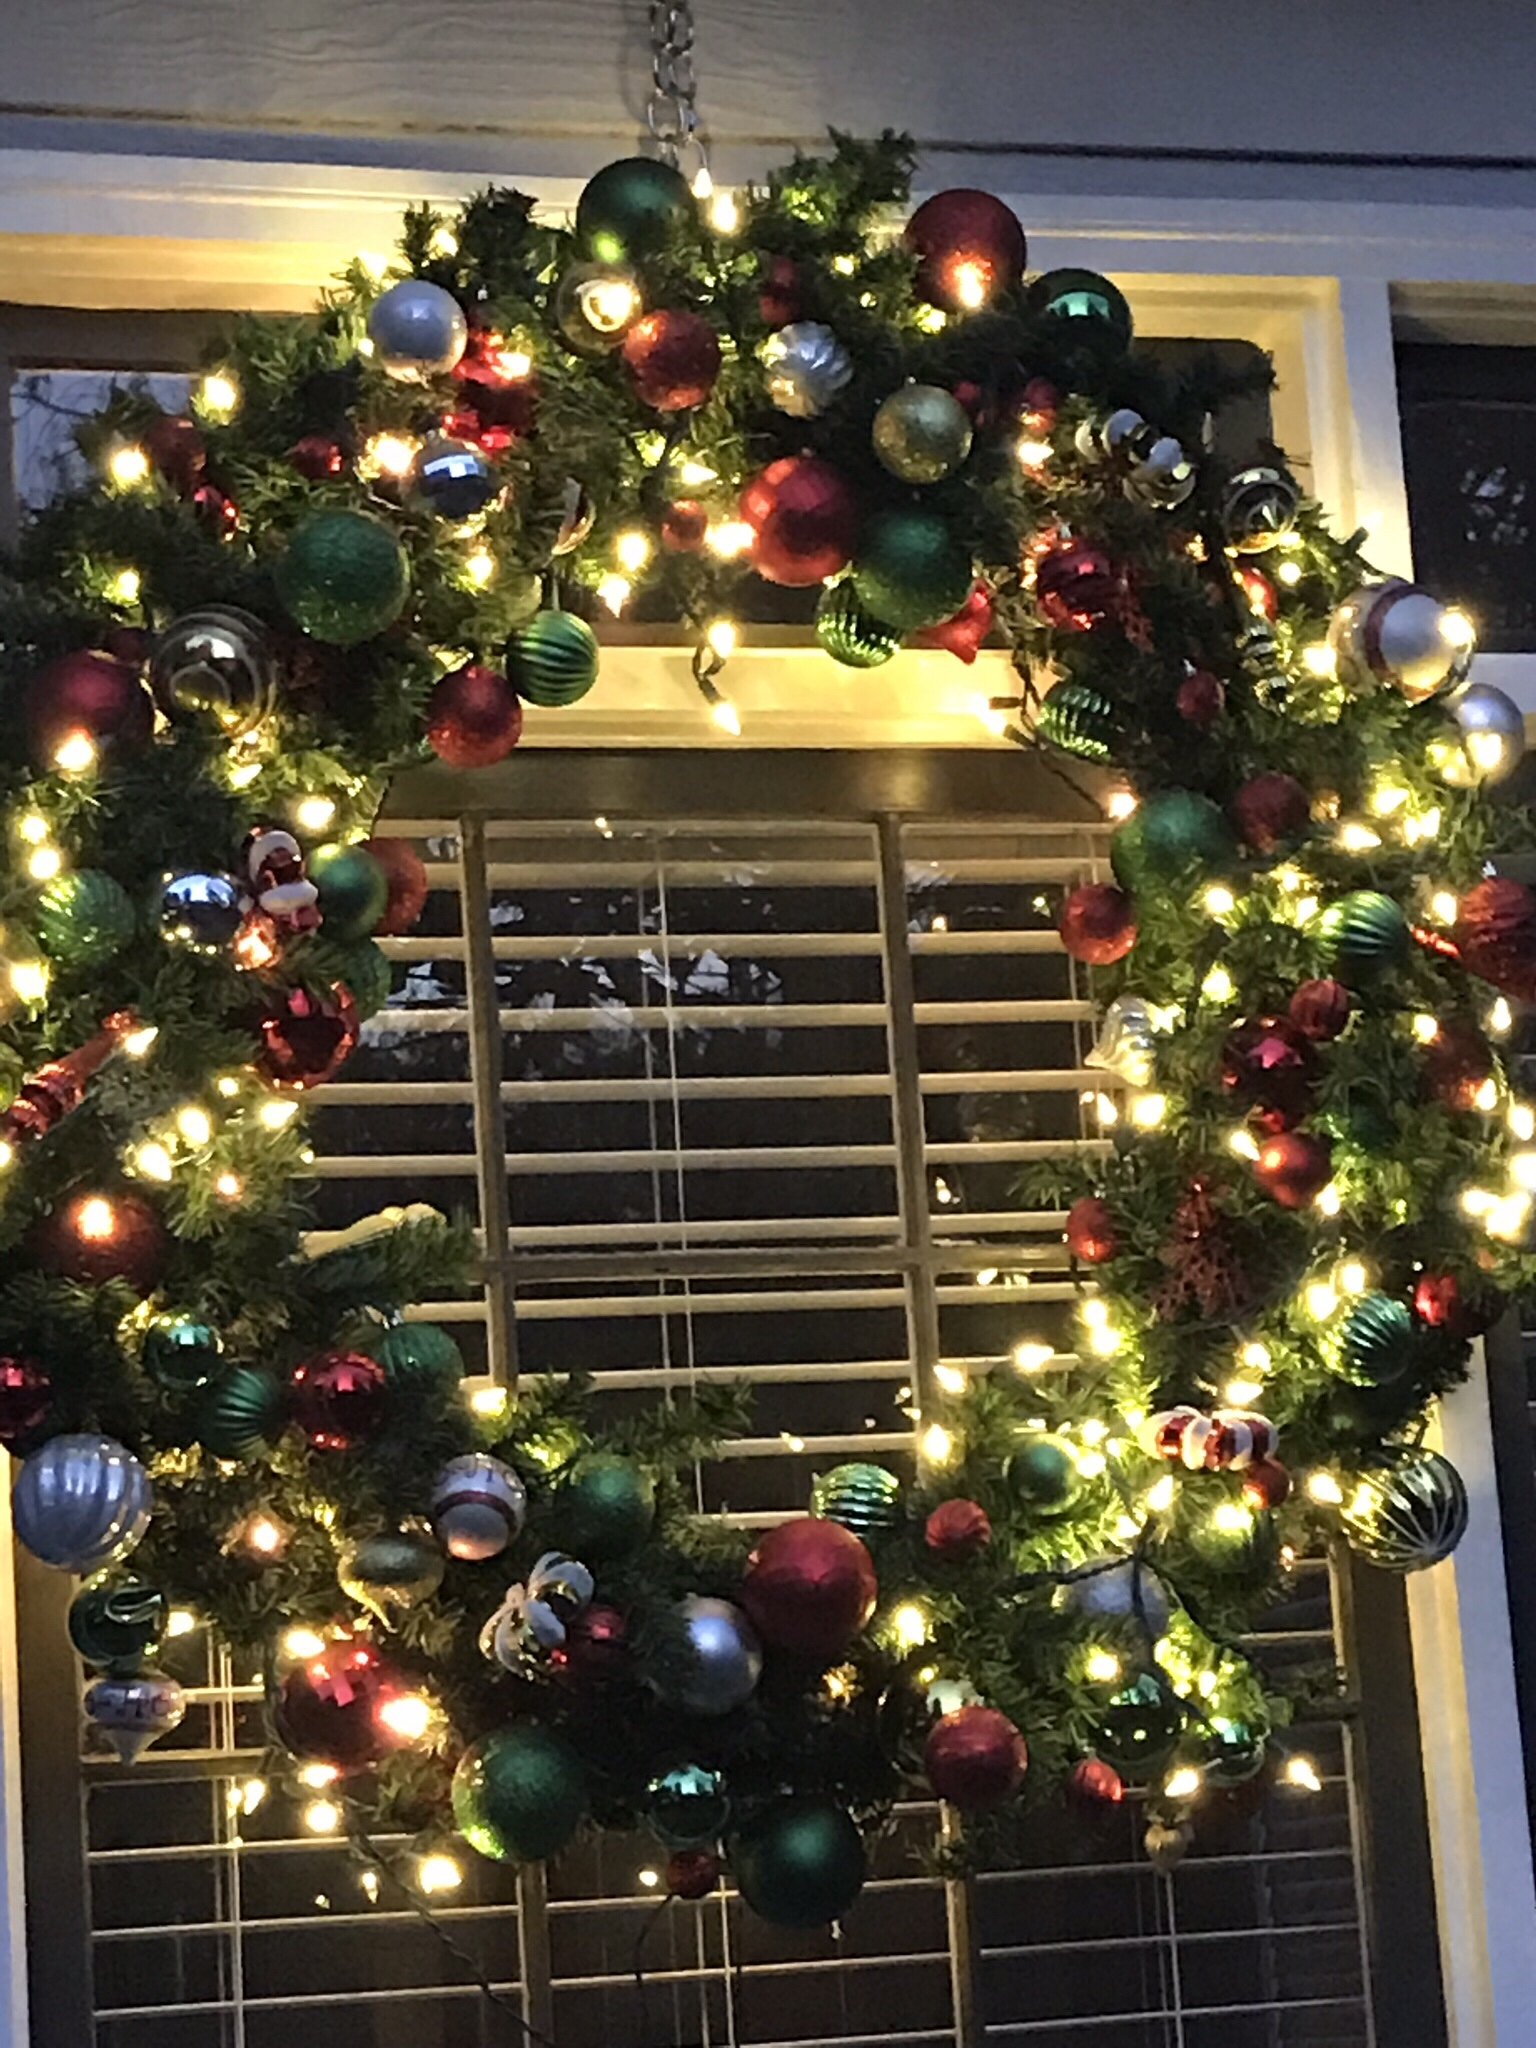 Outdoor Christmas Decorations Images.Front Door Christmas Decor Ideas Outdoor Christmas